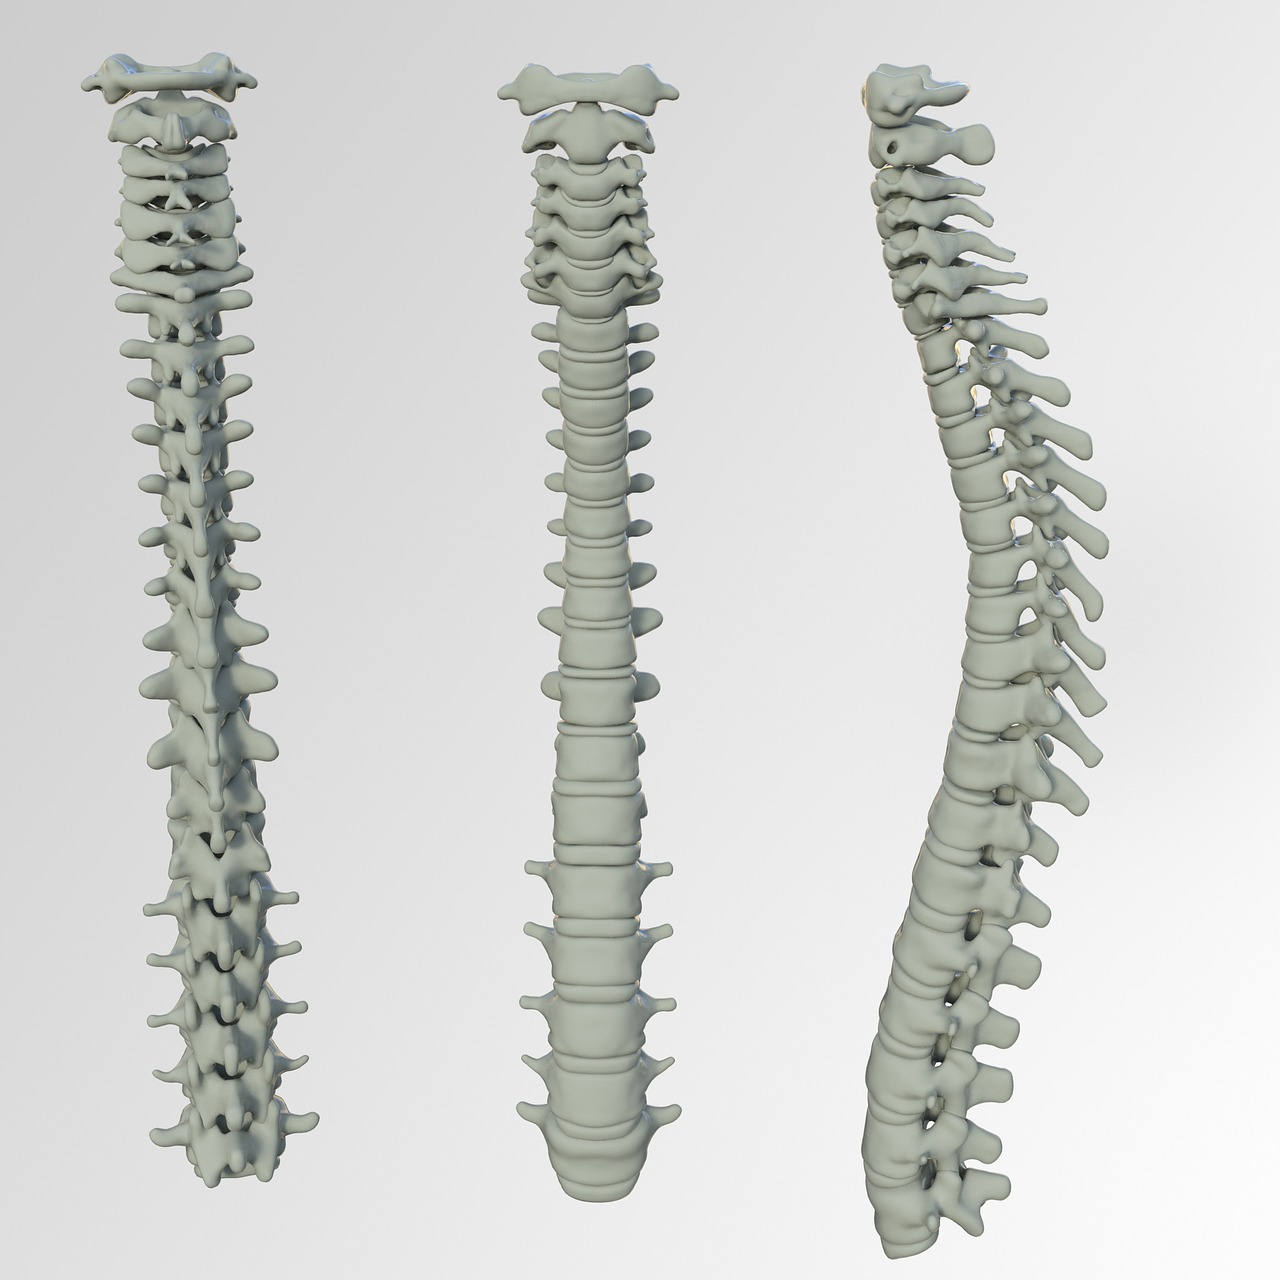 image showing how Osteoporosis causes curvature of the spine